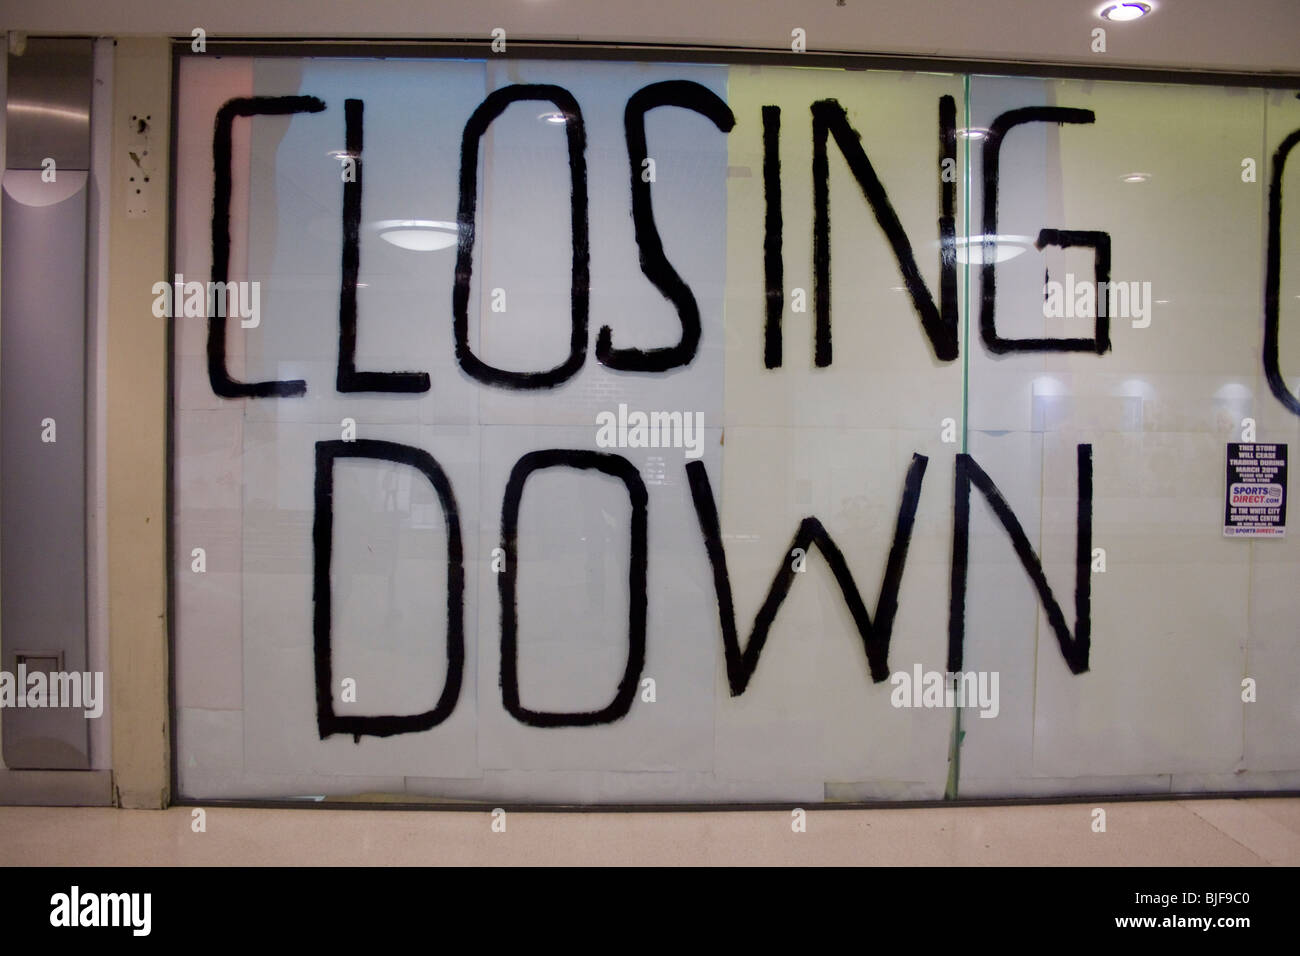 Closing Down written in big letters on a shop window Stock Photo